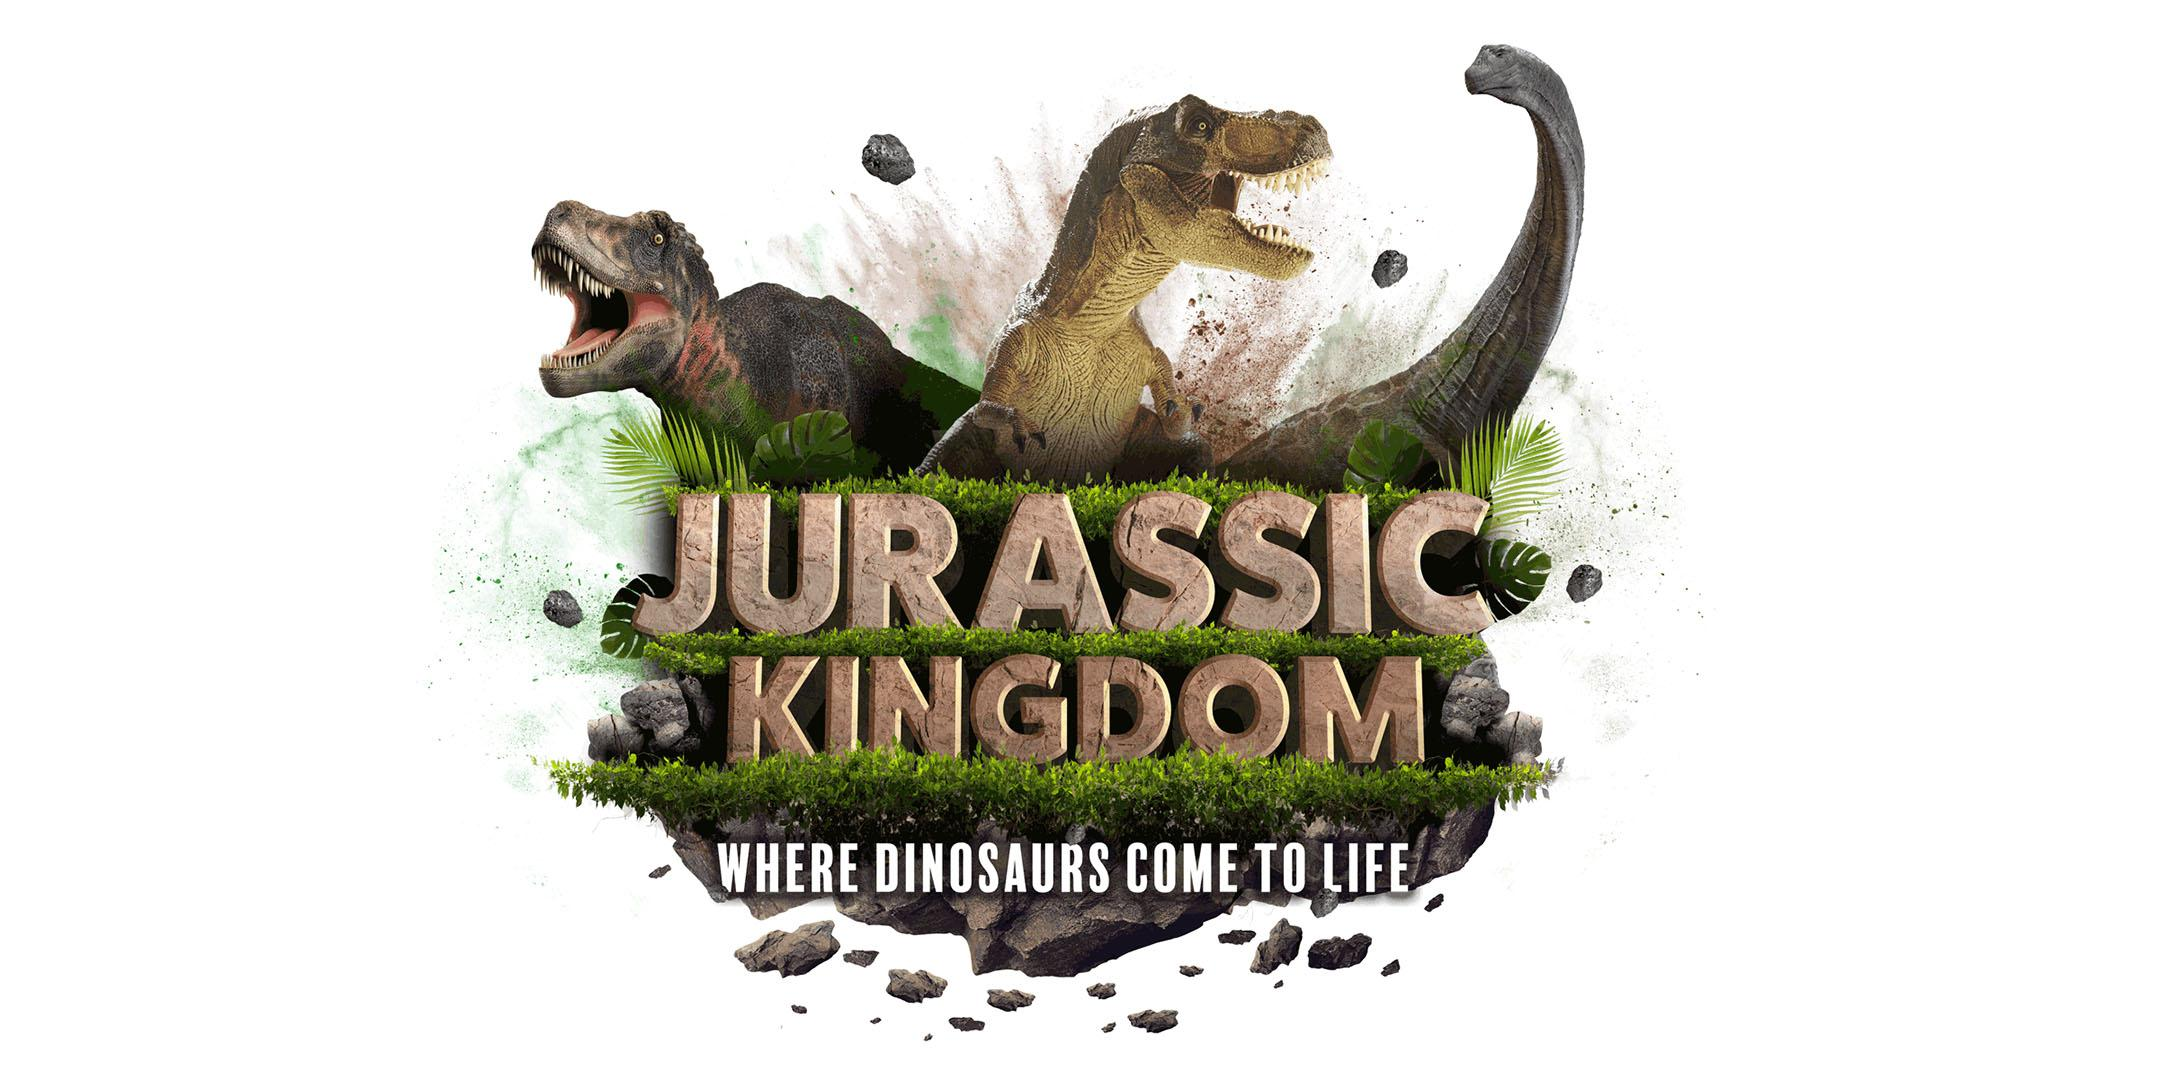 Jurassic Kingdom Tour Leeds